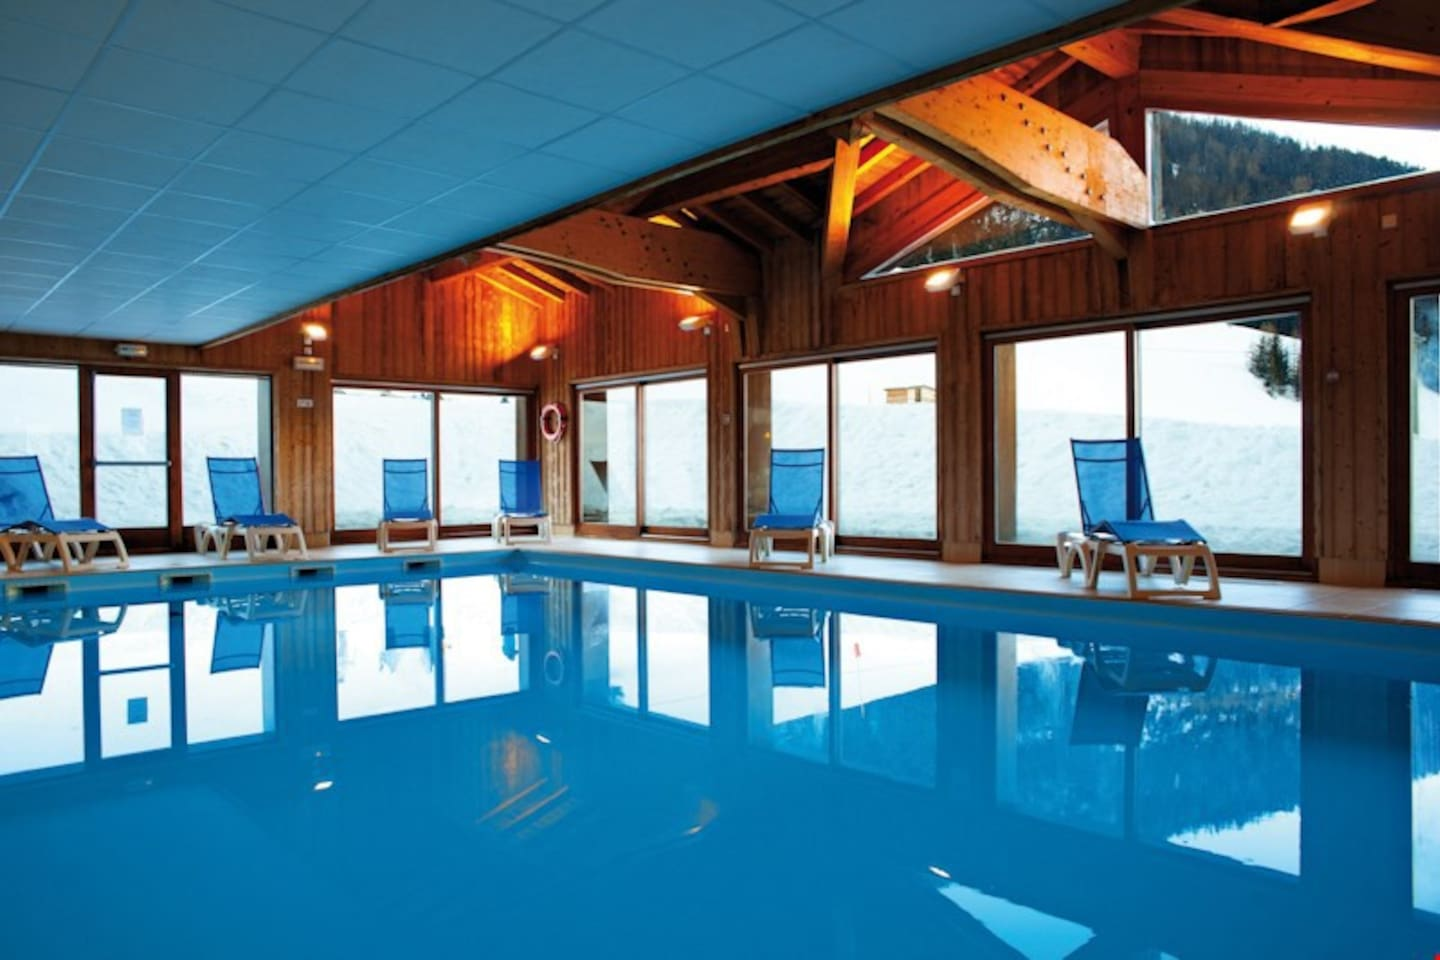 Dive into the lovely indoor pool after a great day outside.